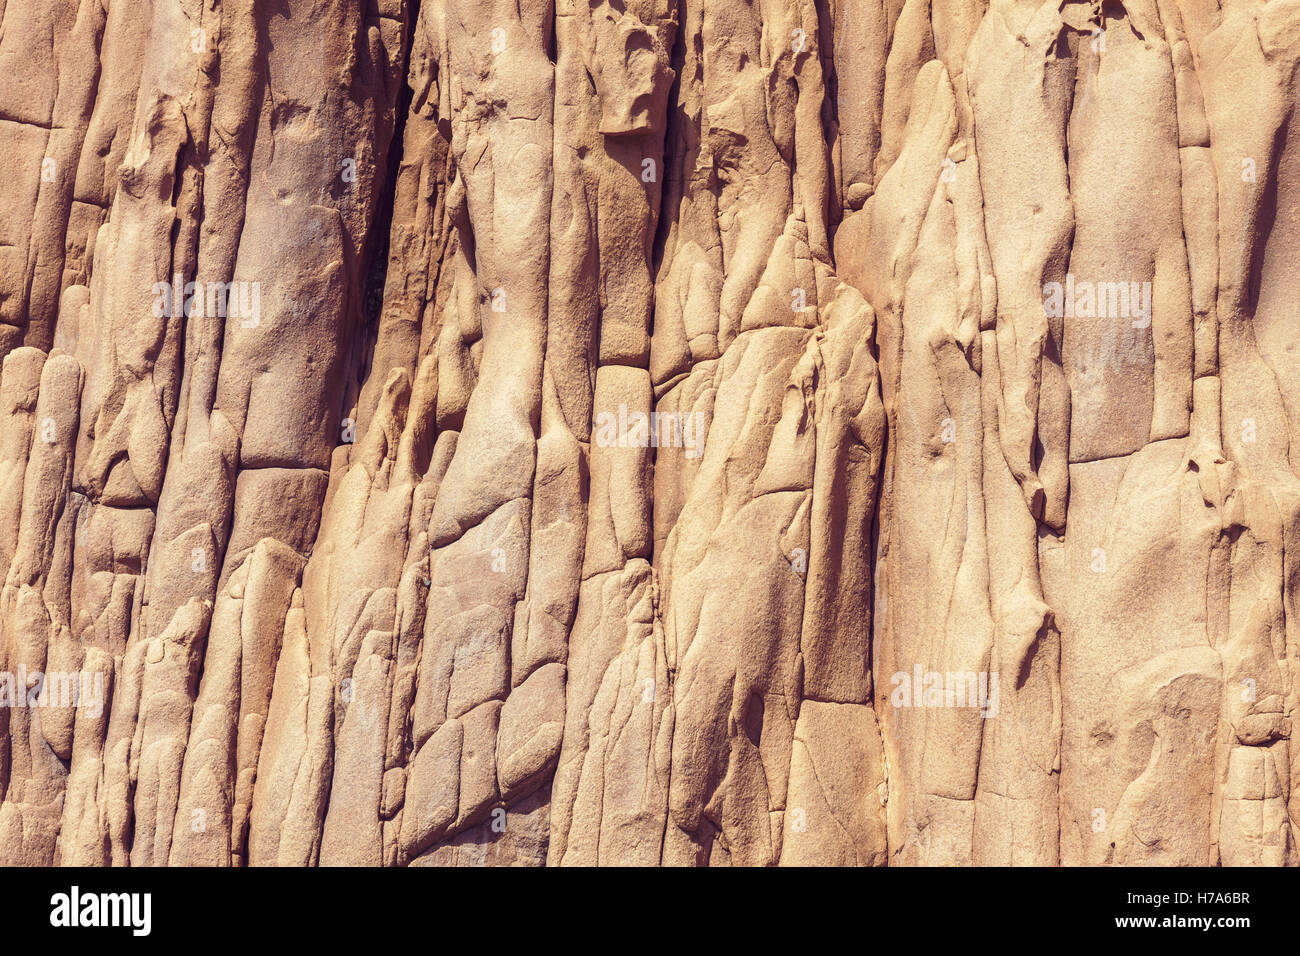 Mountain detail, natural solid rock background Stock Photo